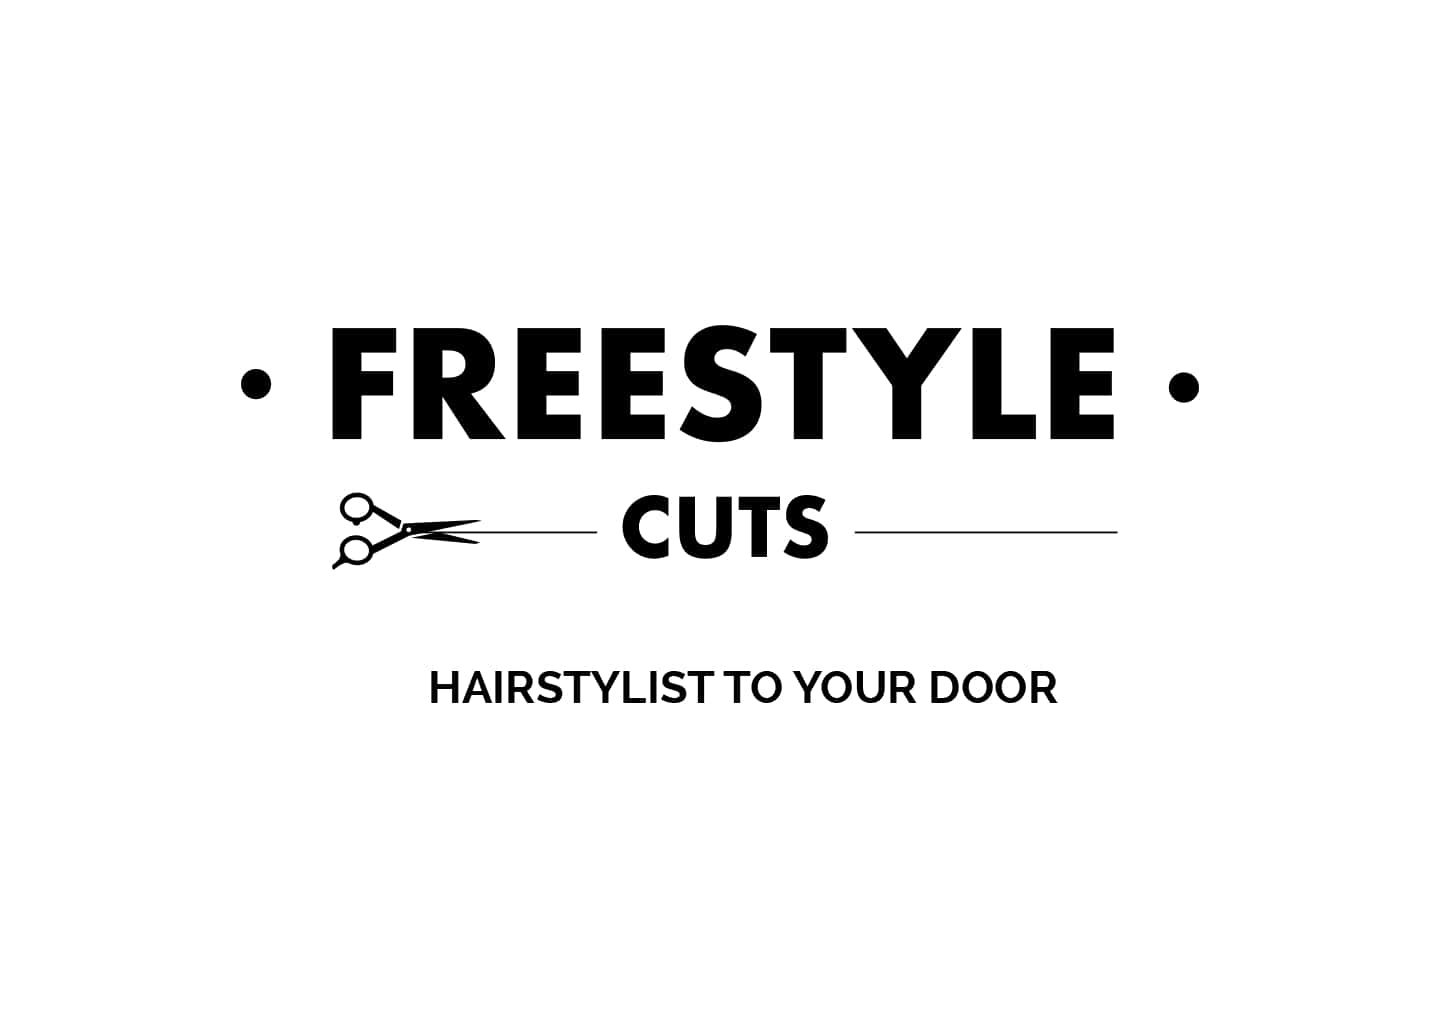 freestylecuts_mobile_hairstylist_logo